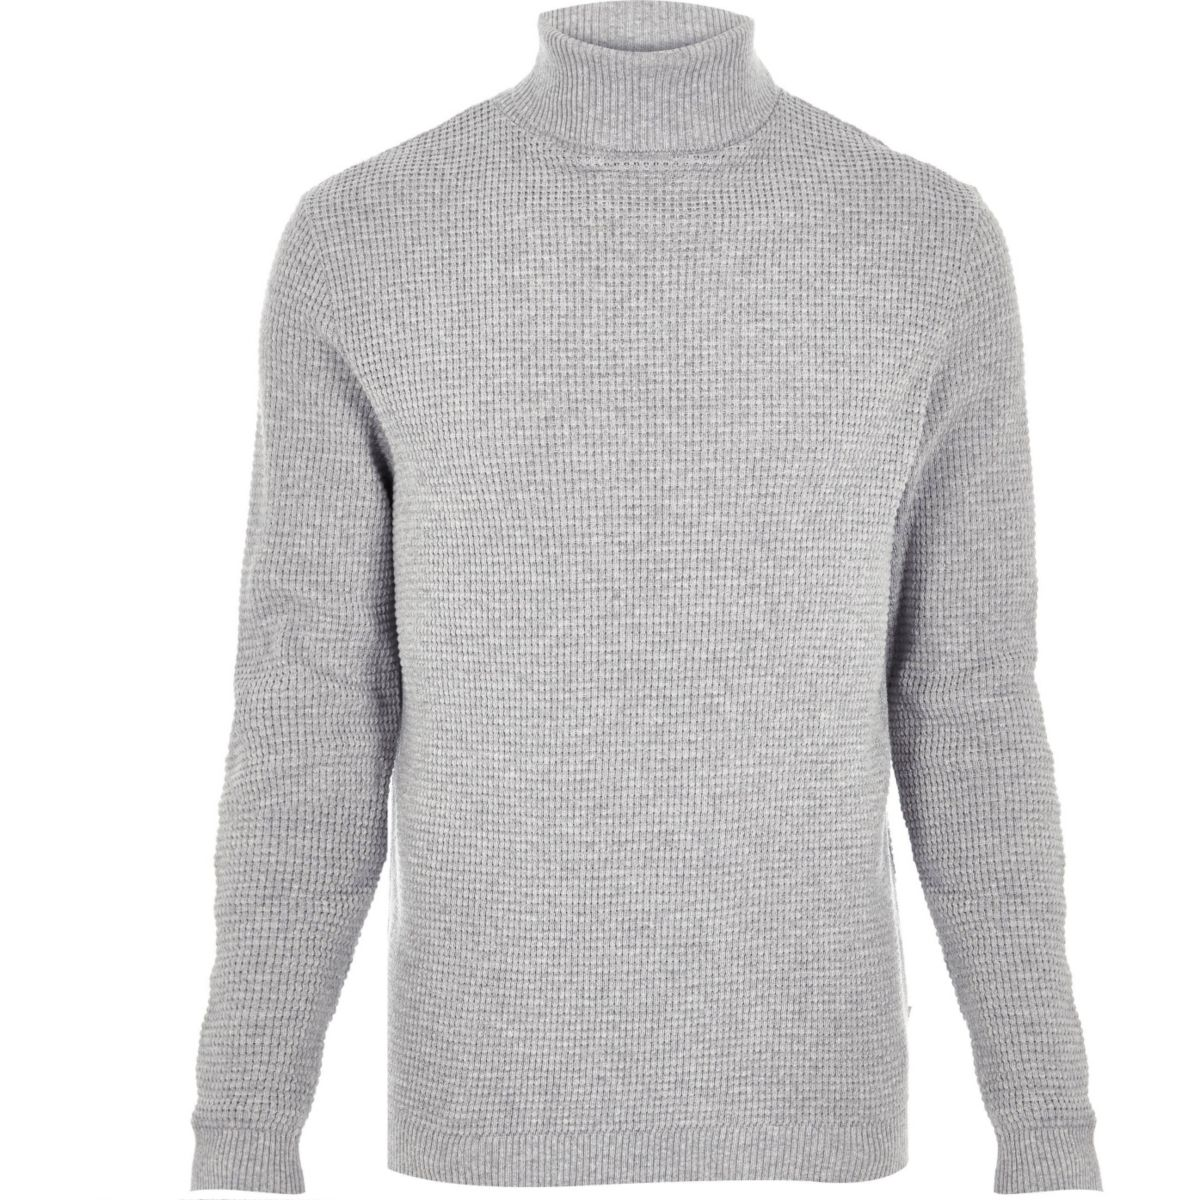 Light grey textured roll neck sweater